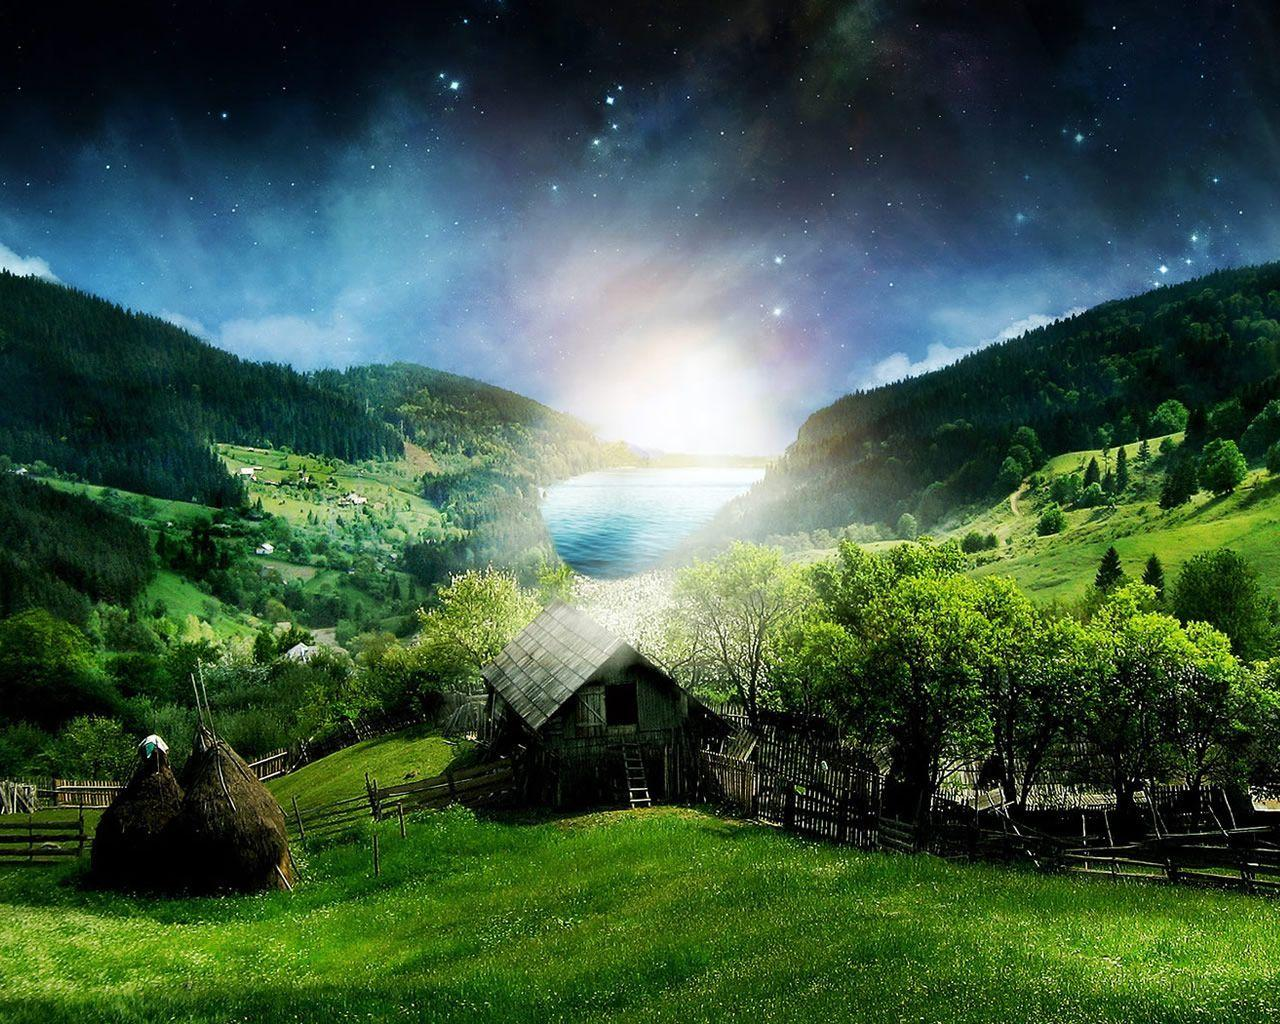 3D Nature Wallpaper Large Size Images 6 HD Wallpapers | Natureimgz.